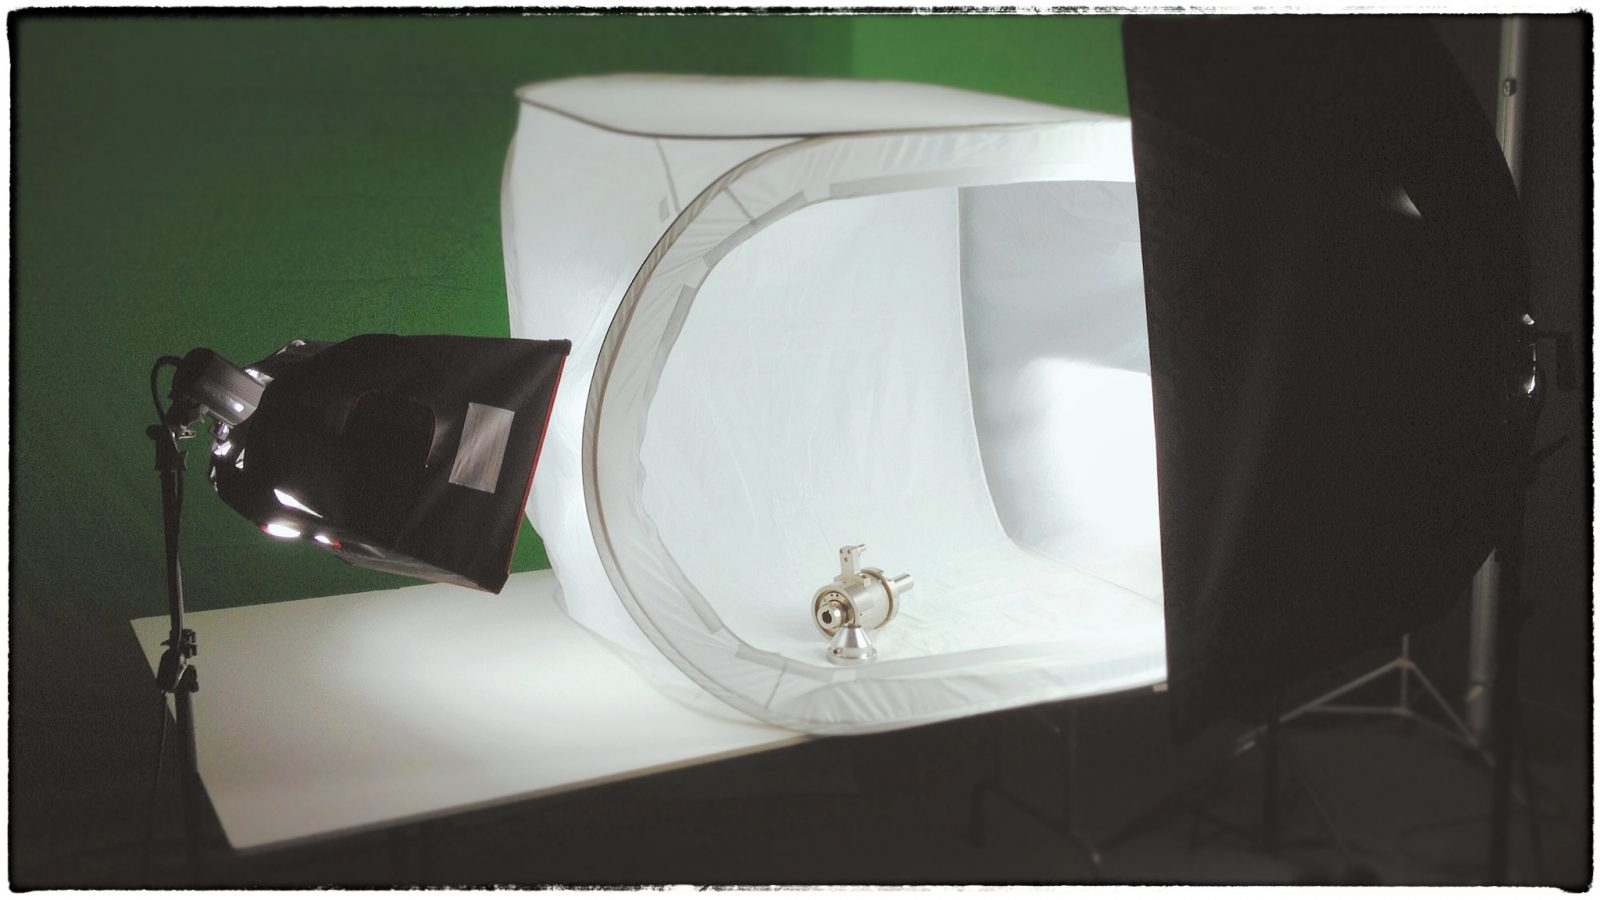 Product Photo Shoot at Skyline Studios